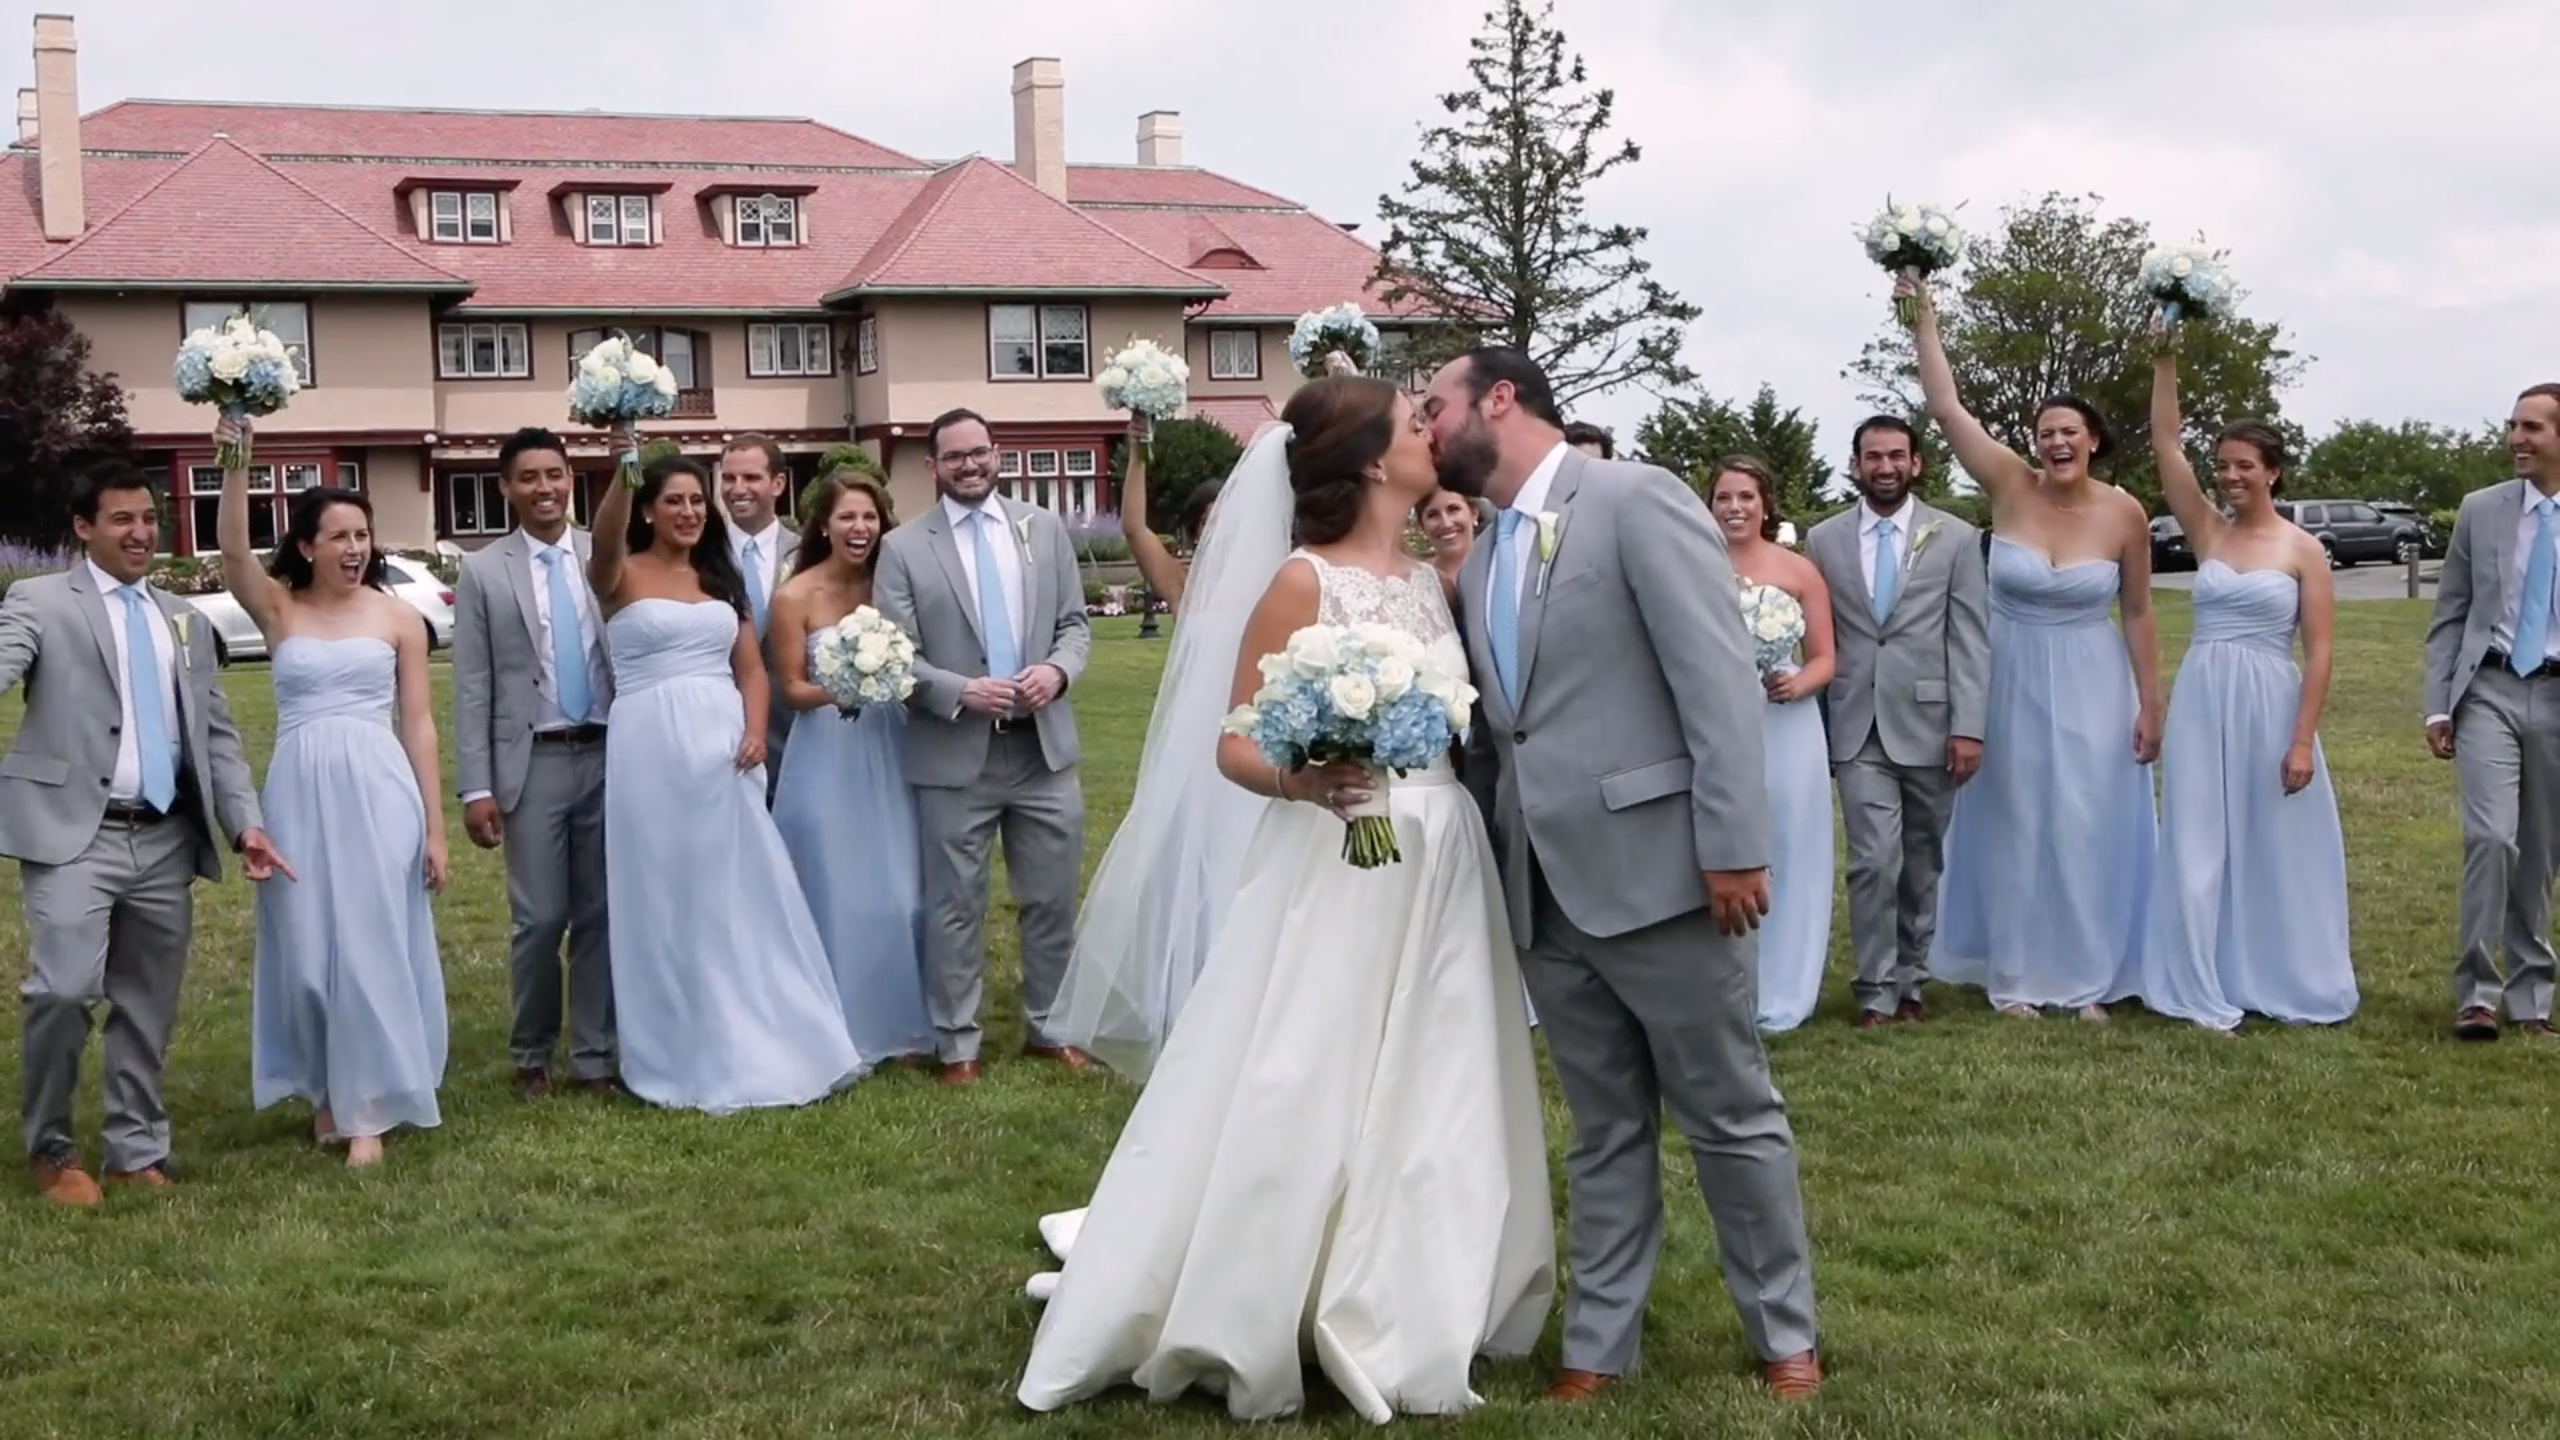 Stuart + Stephanie | Brewster, Massachusetts | Ocean Edge Resort